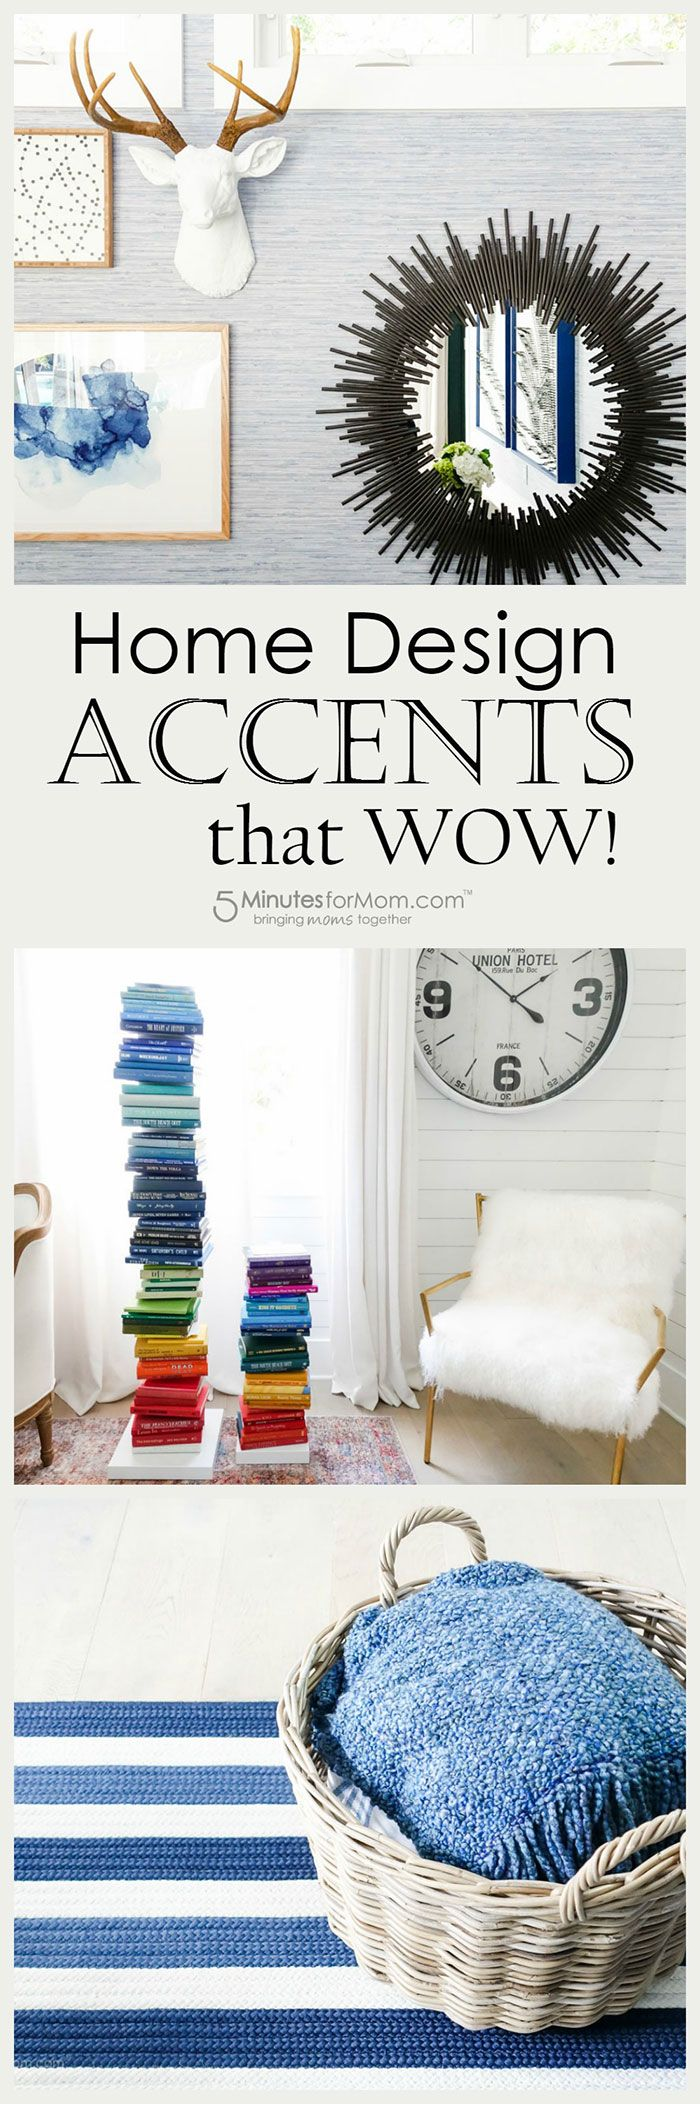 353 best diy home decor images on pinterest diy craft projects